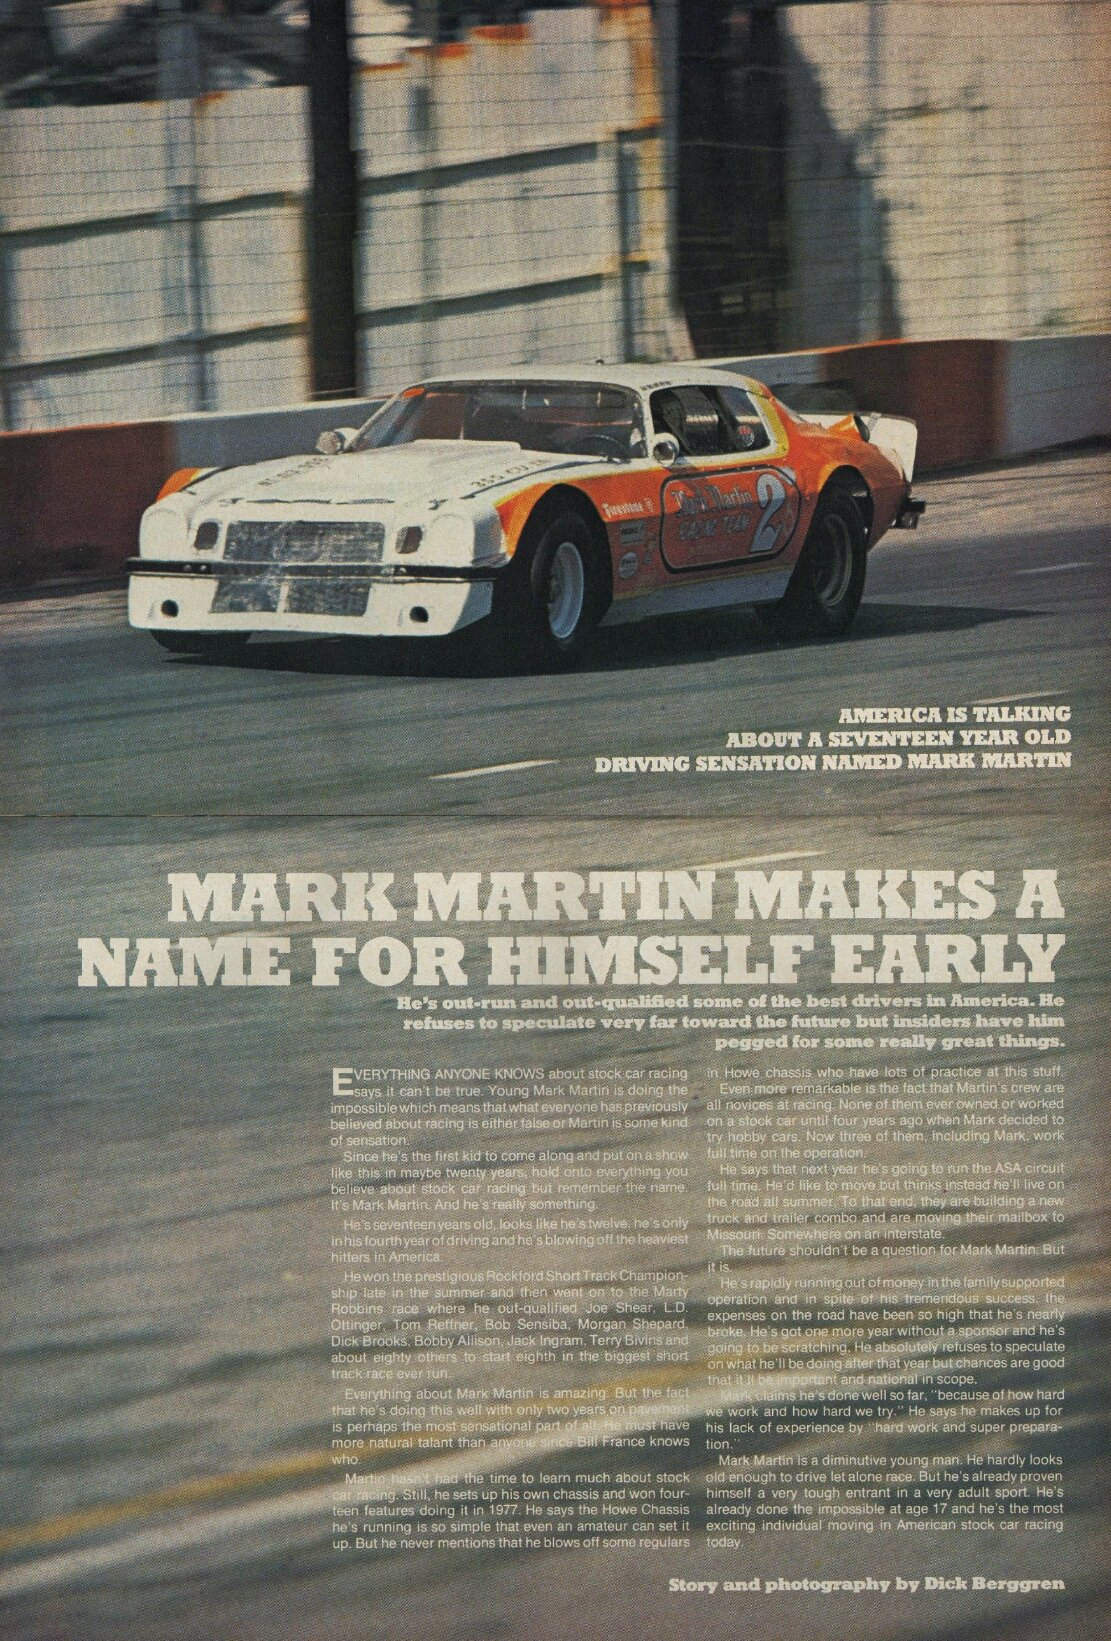 """America is talking about a 17 year-old driving sensation named Mark Martin\""  Happy Birthday to Mark Martin!"